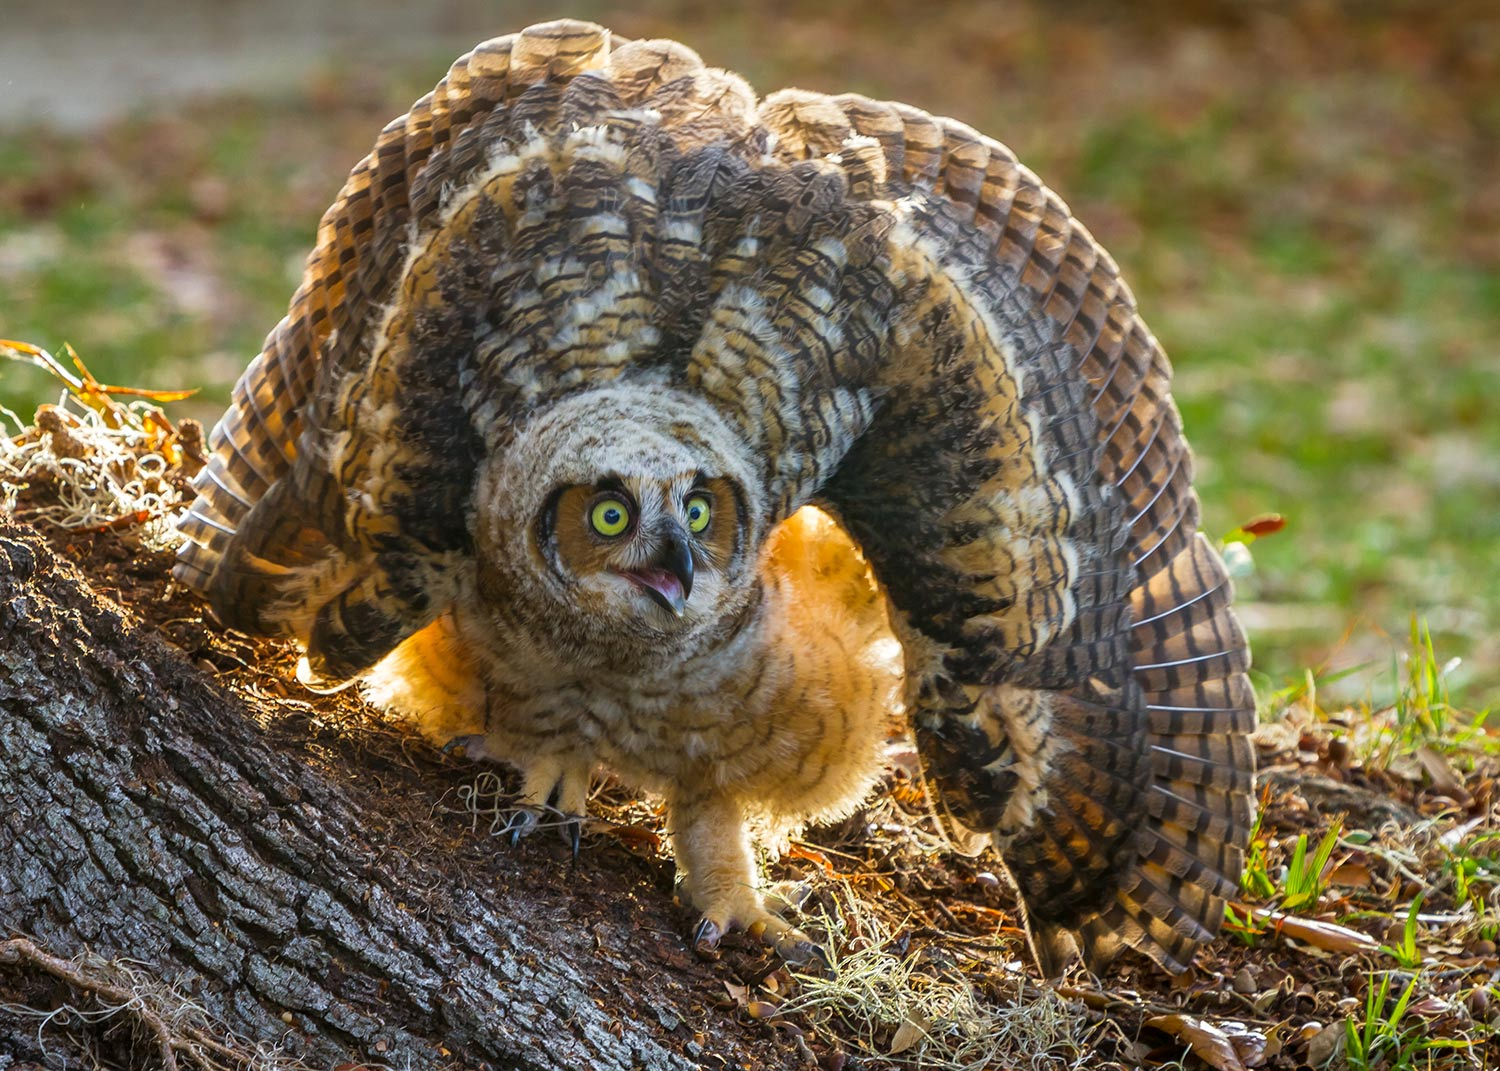 I watched this owl as it was learning to fly. The nest was in a neighborhood and right in someone's front yard. The young owl did not like the car that was passing by on the road that's just out of frame.